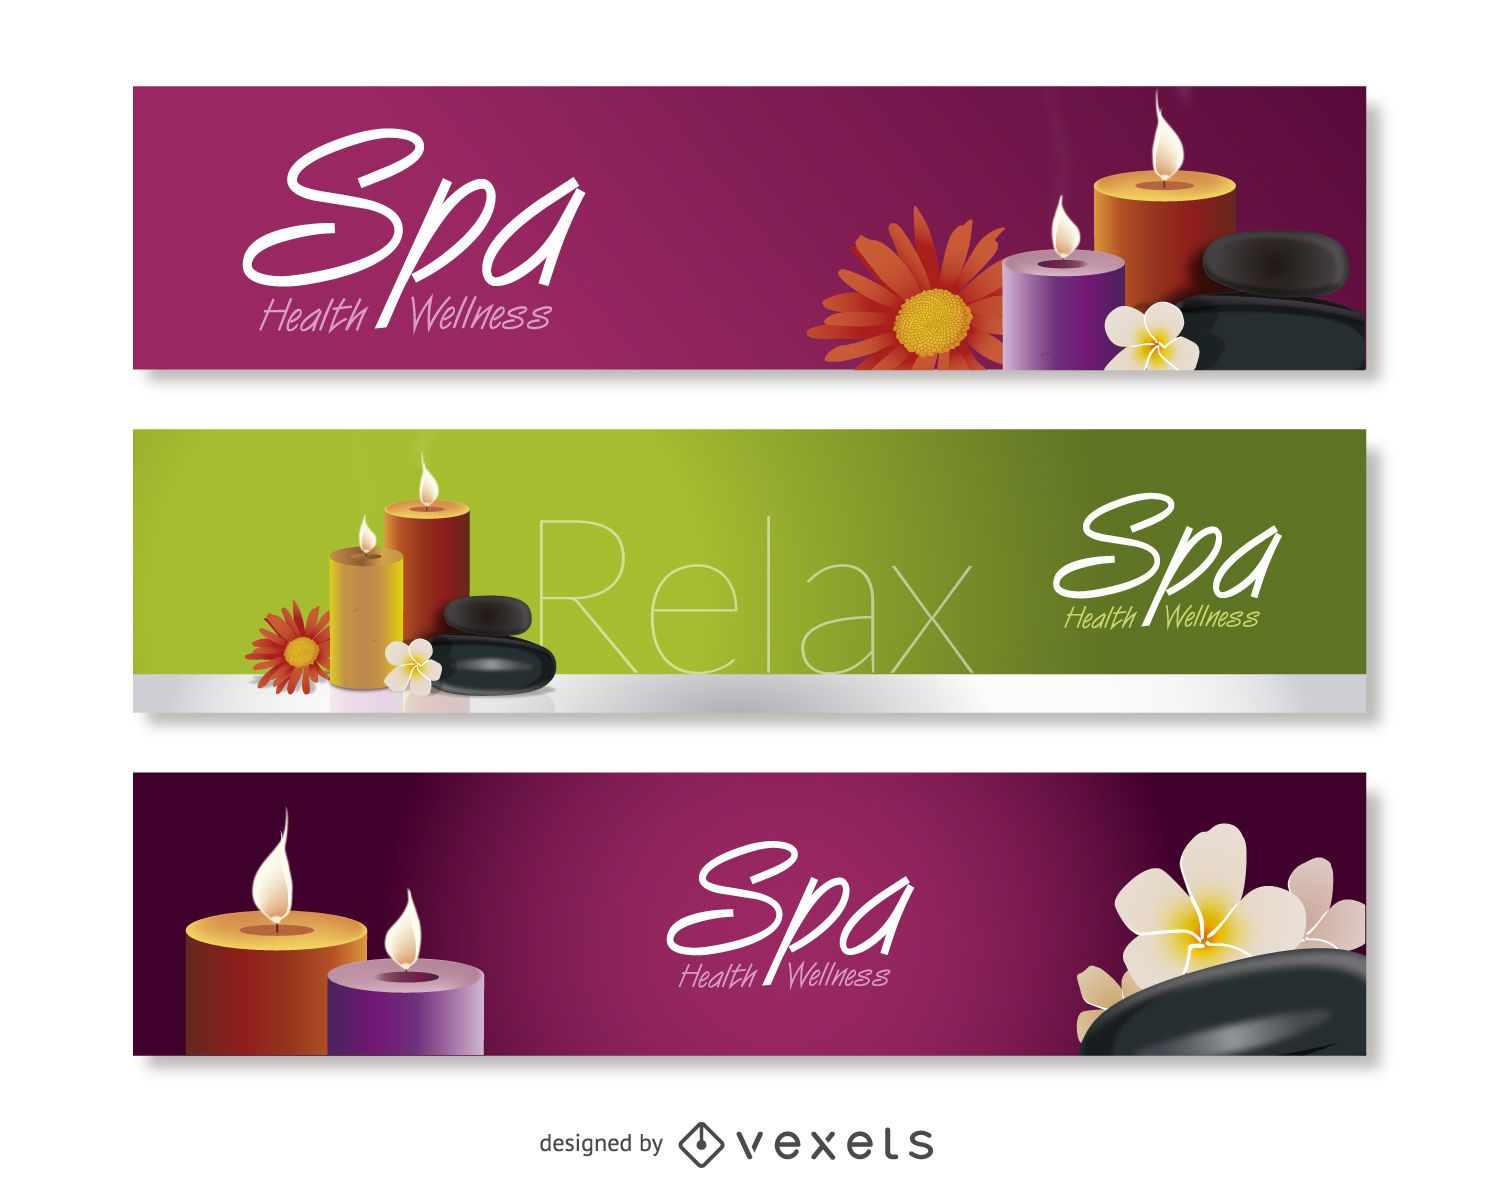 How to Buy a Spa Business